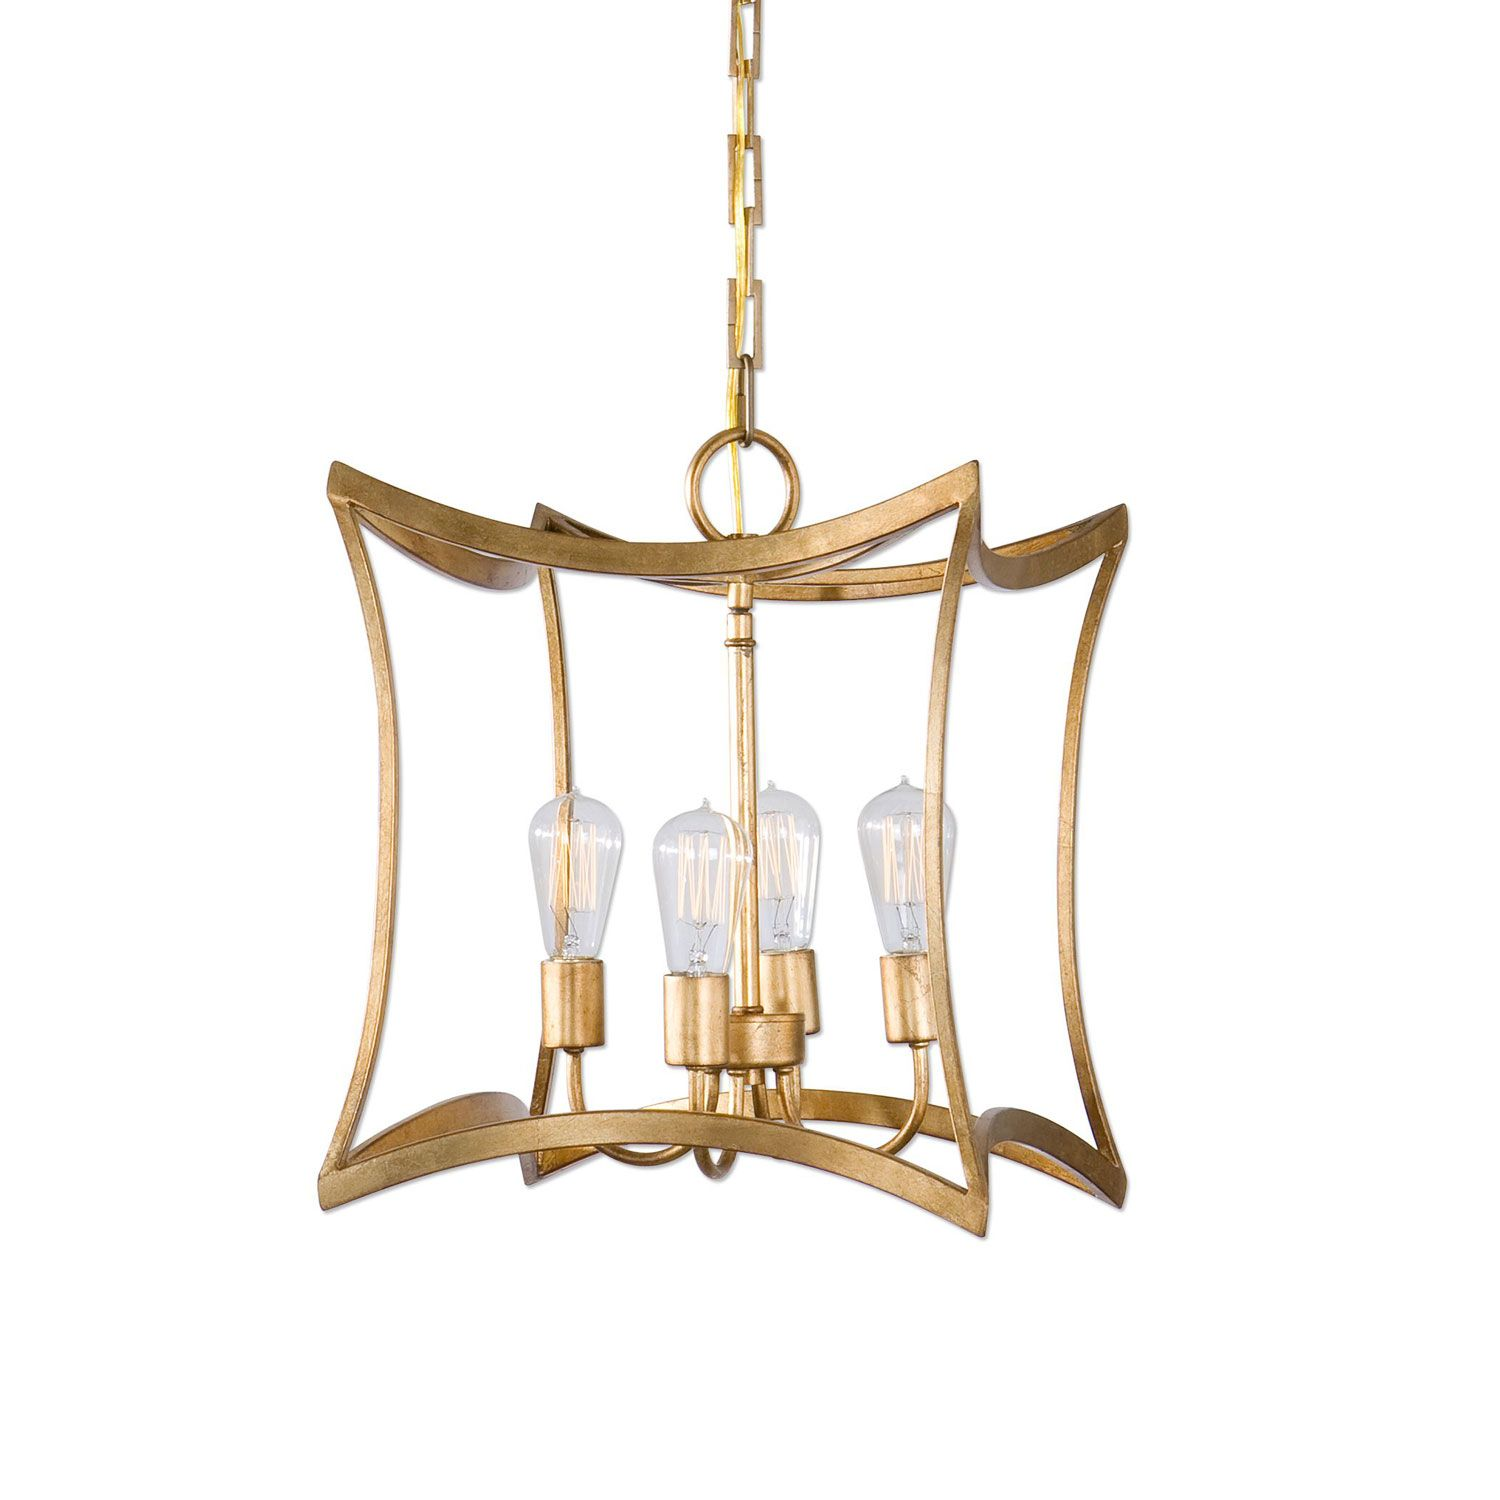 Dore Gold Four Light Lantern Pendant Uttermost Lantern Pendant Lighting Ceiling Lighting  sc 1 st  Pinterest : uttermost pendant lights - azcodes.com